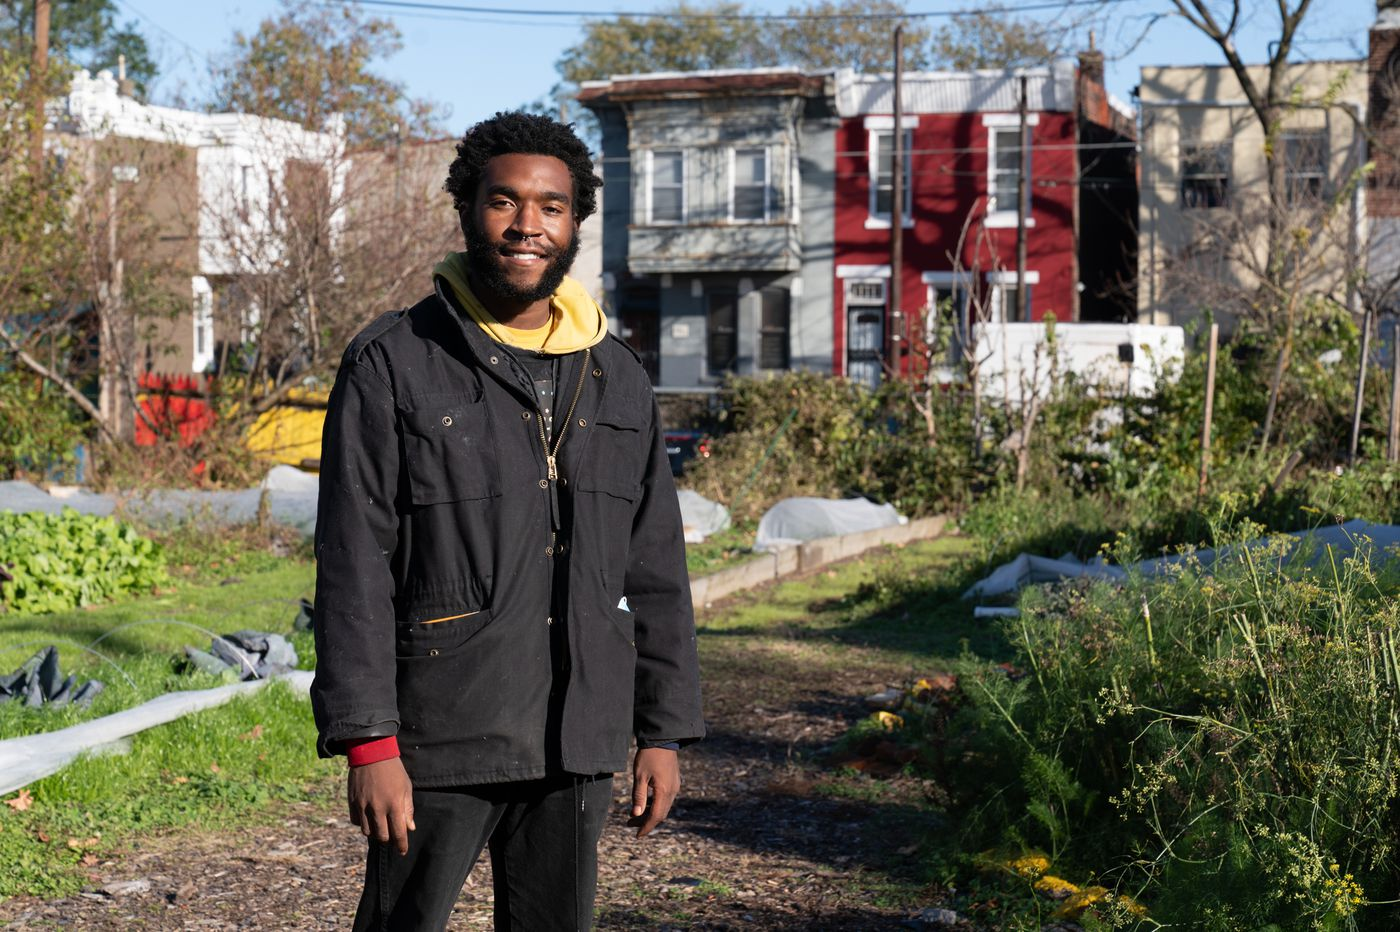 An urban farm feeding the poorest part of Philly fights to stay alive and growing